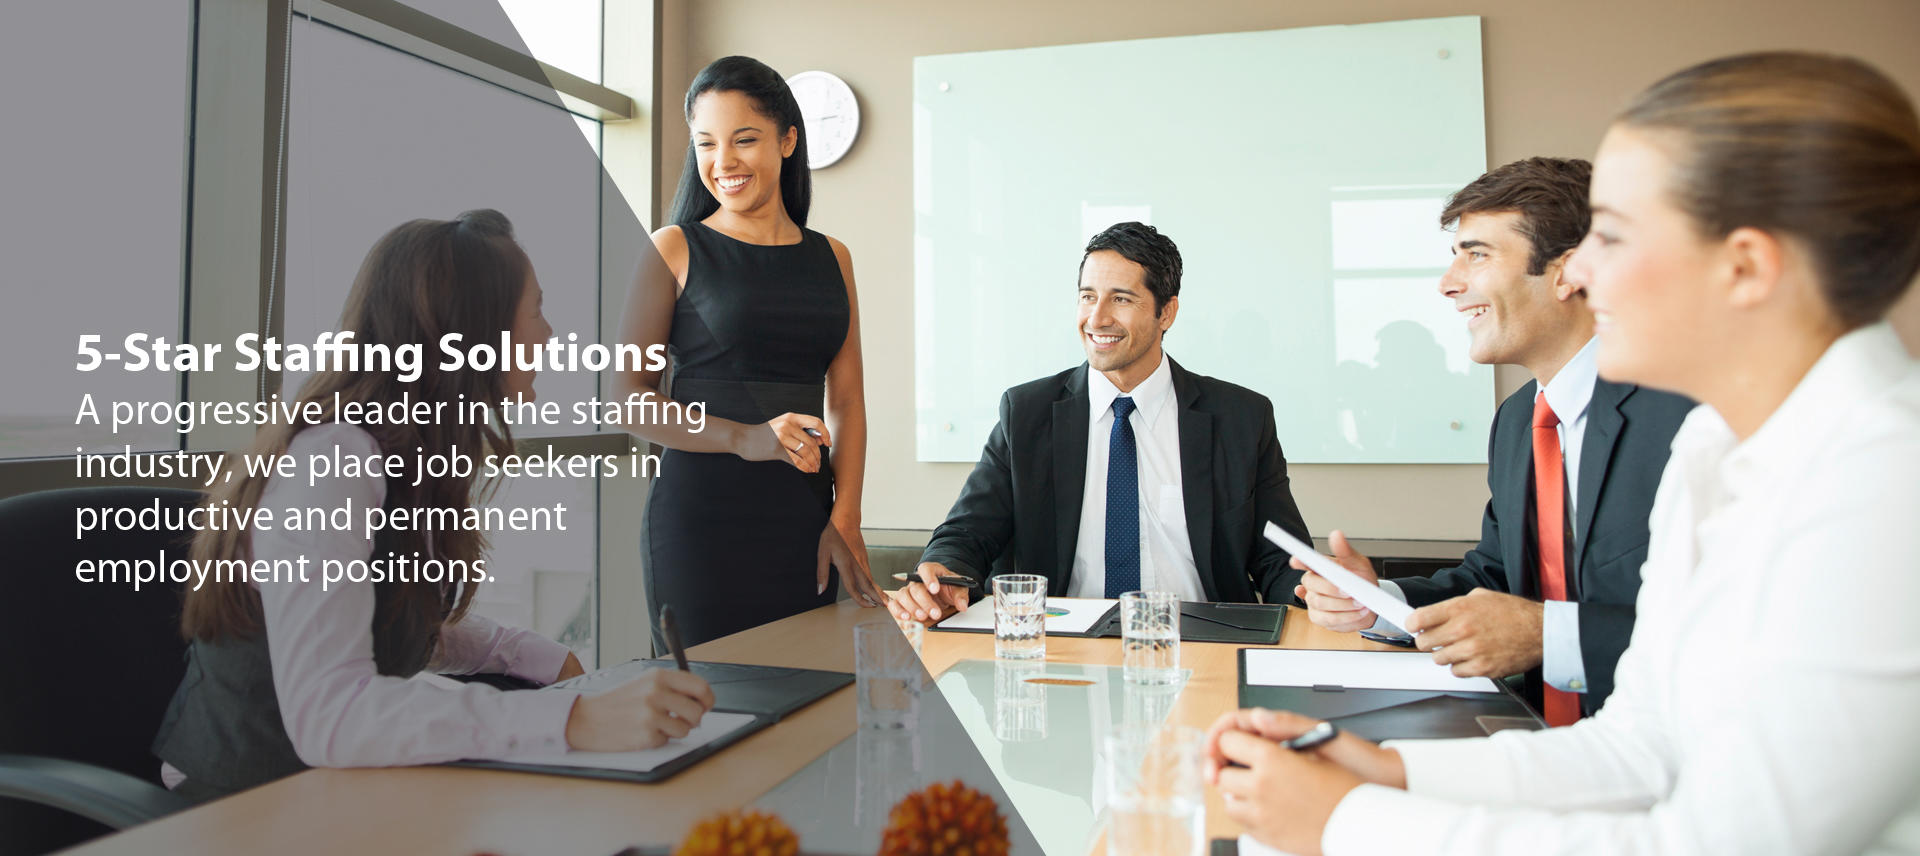 5-Star Staffing Solutions image 0